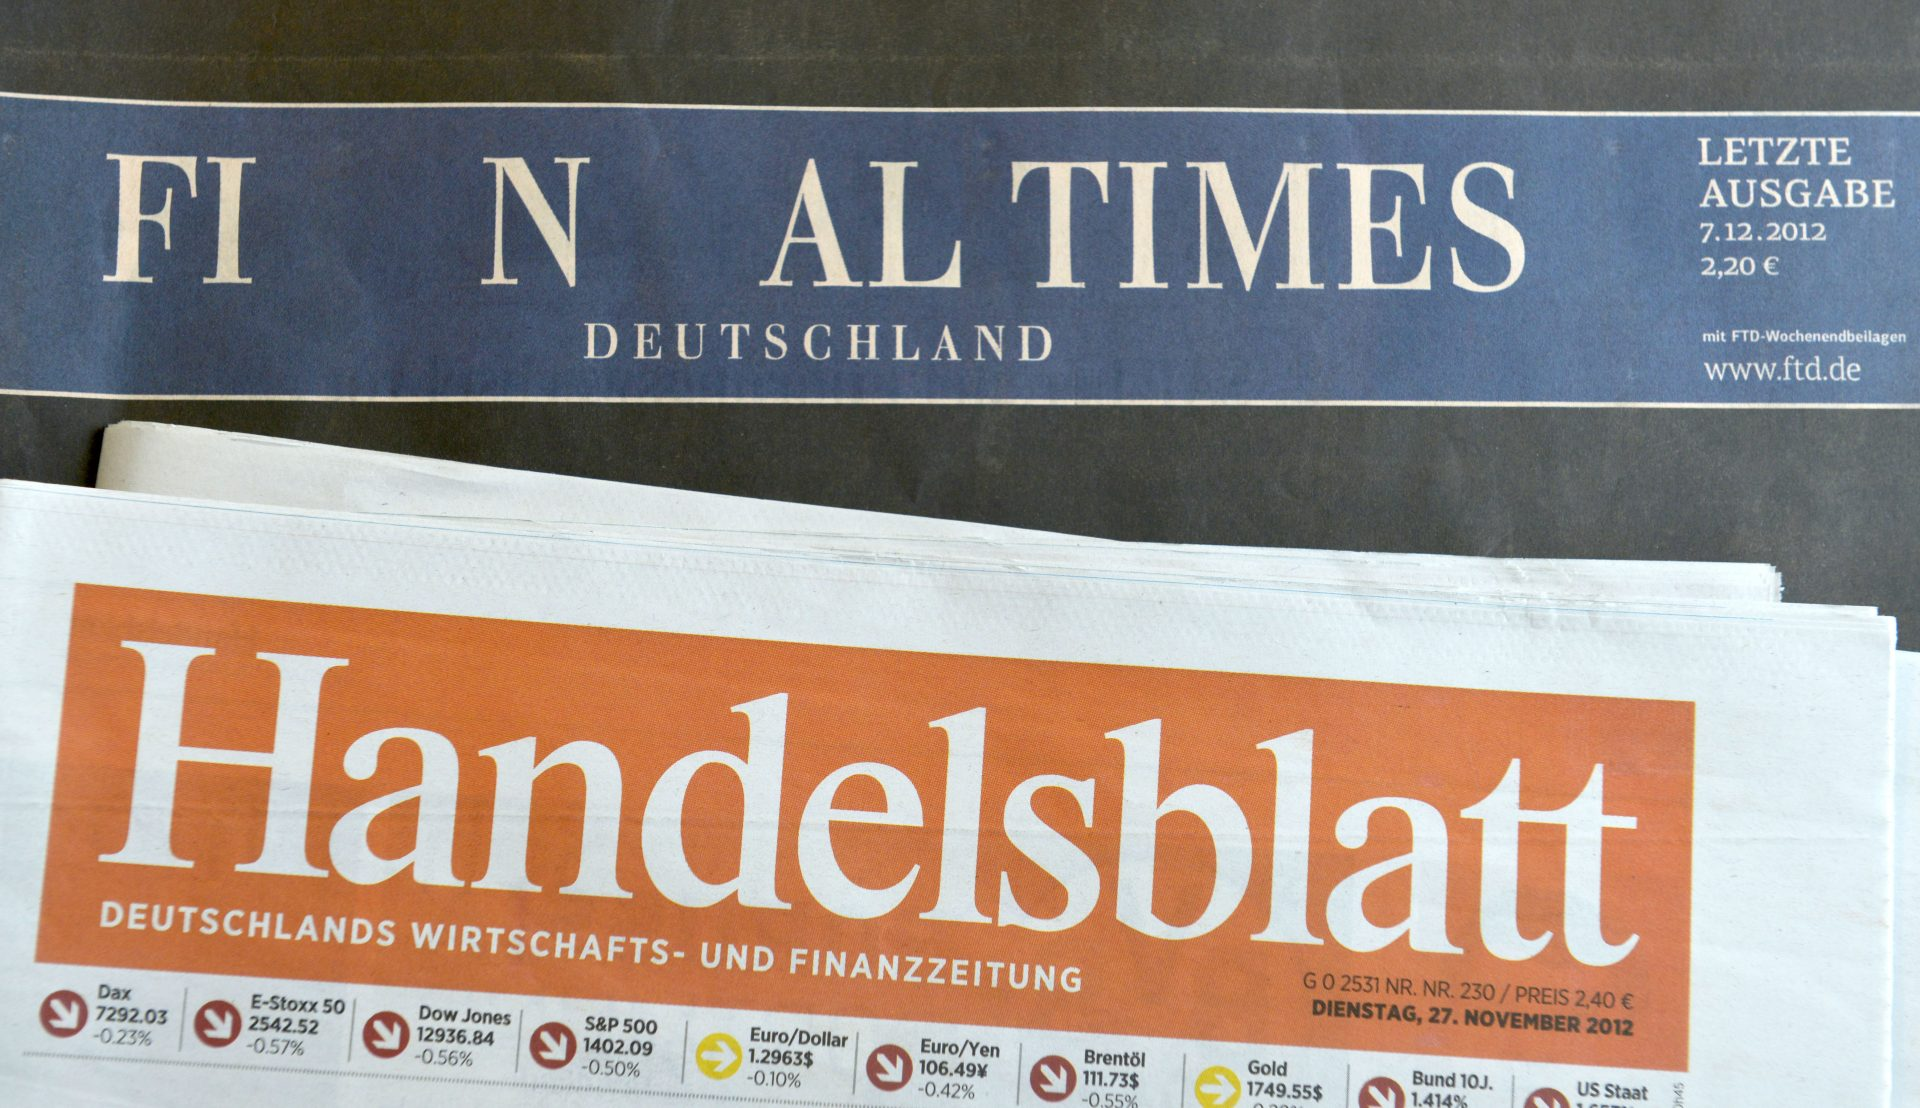 HAMBURG, GERMANY - DECEMBER 07: The final issue of the Financial Times Deutschland daily newspaper is seen on a issue of the Handelsblatt, its biggest competitioner, on December 7, 2012 in Hamburg, Germany. Gruner + Jahr launched the paper in 2000 and its management recently decided to cease publication given that the paper had failed every year to make a profit. Germany has been hit by several media bankruptcies in recent months, including the Frankfurter Rundschau daily newspaper and the DAPD news agency. (Photo by Patrick Lux/Getty Images)